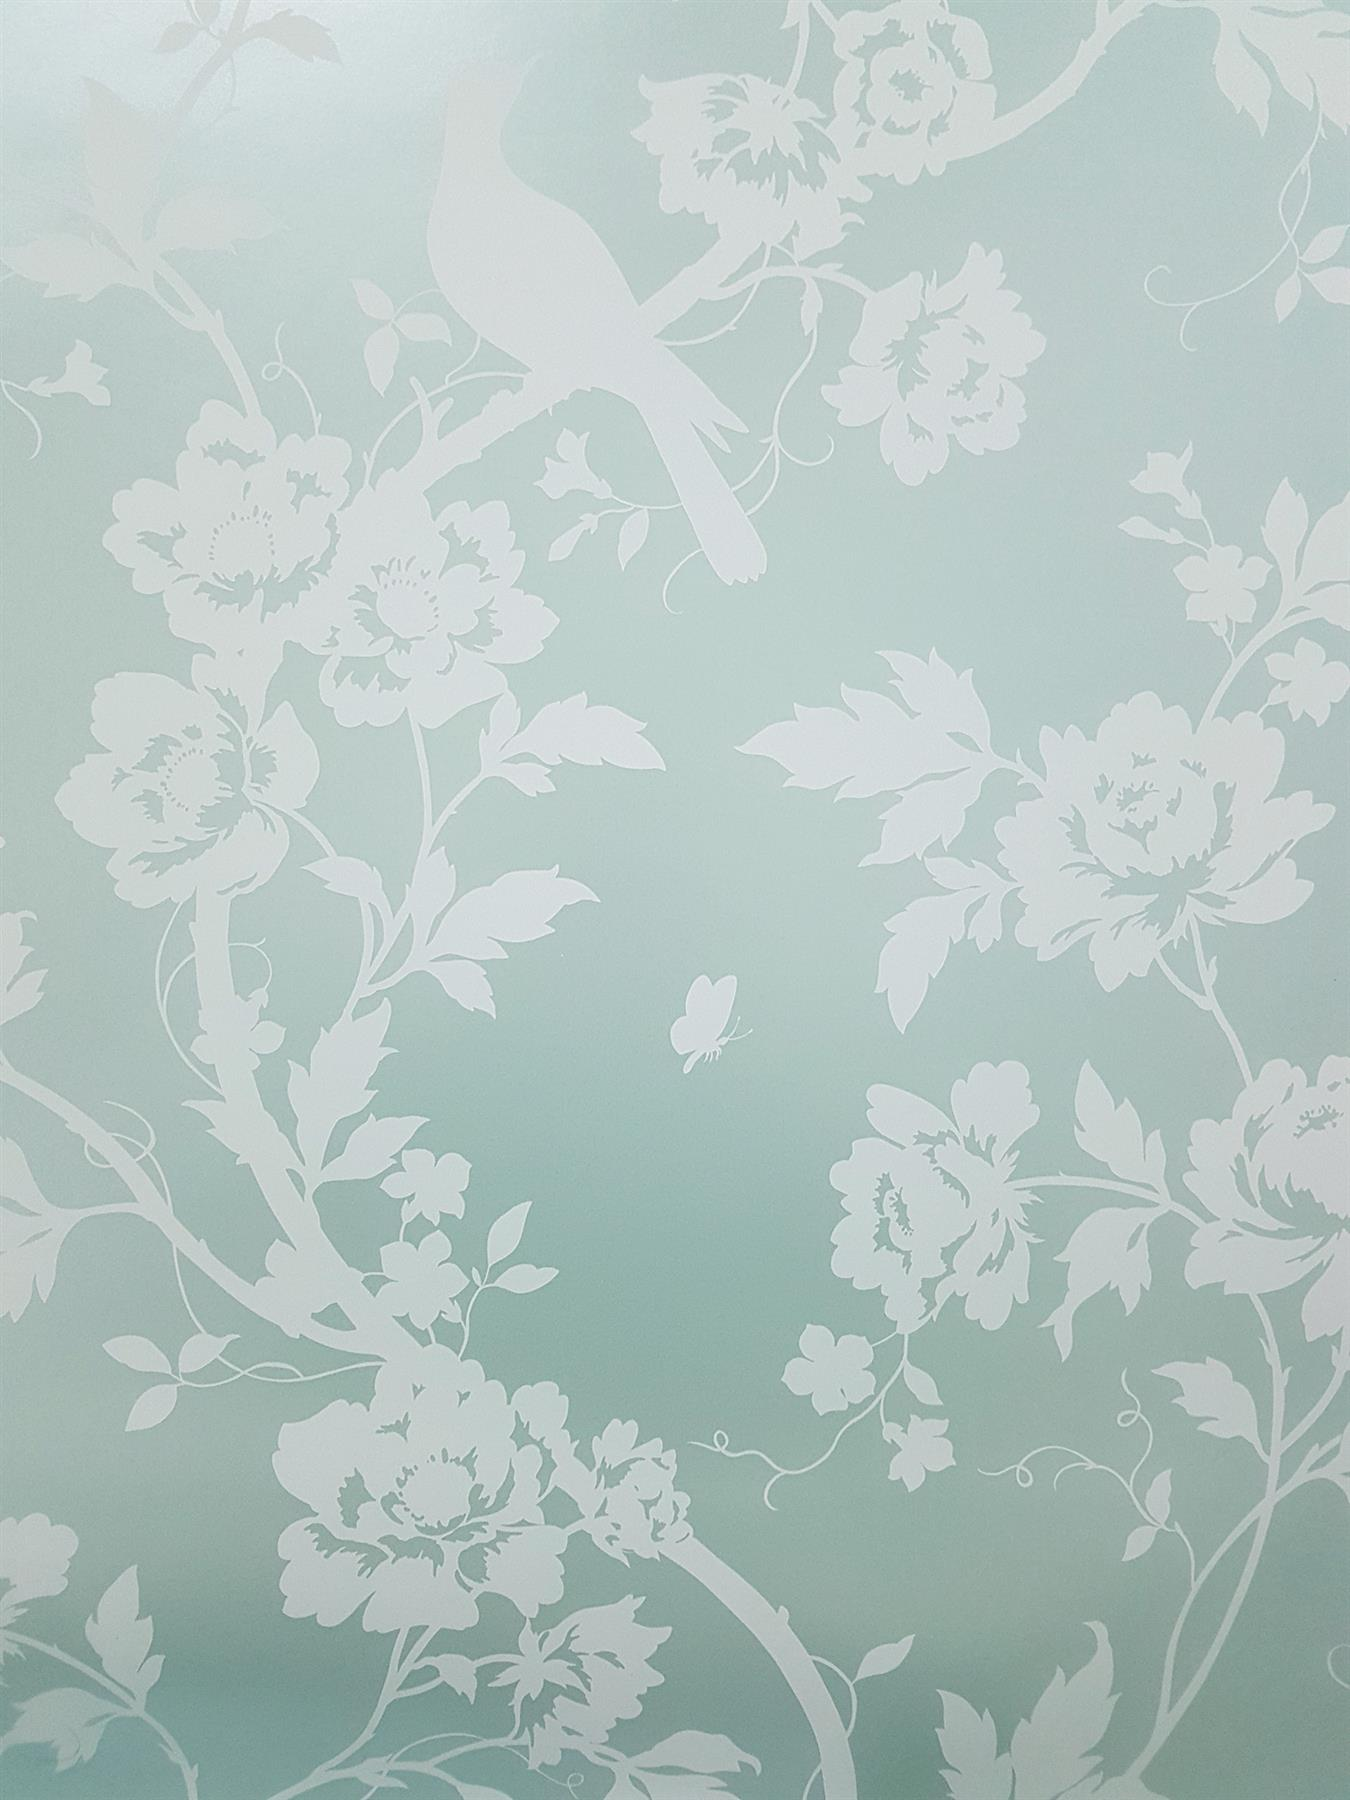 Mint Green Floral Wallpaper Birds Metallic White Fine Decor